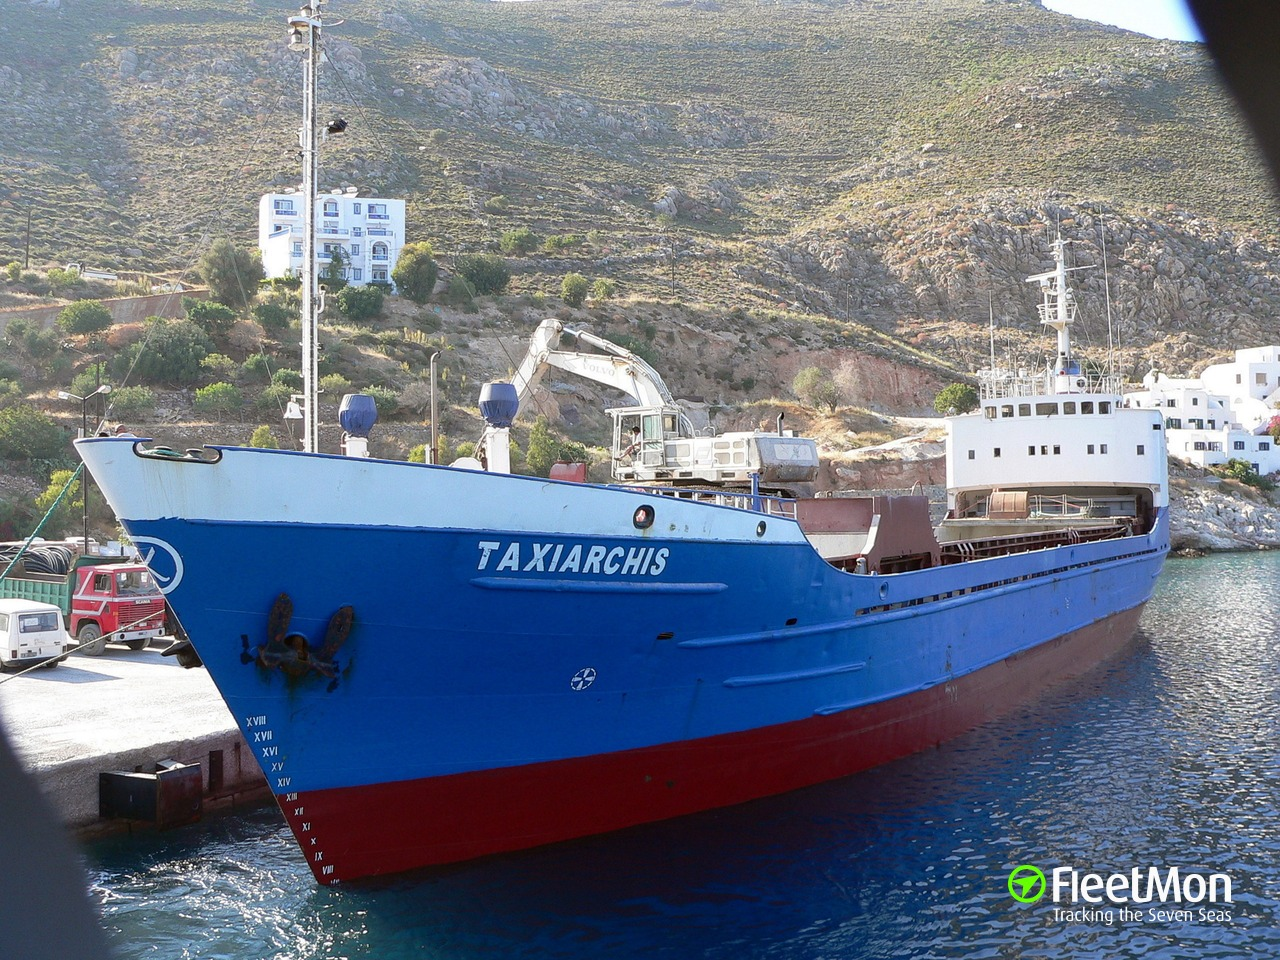 Cargo ship disabled, towed to port, Greece